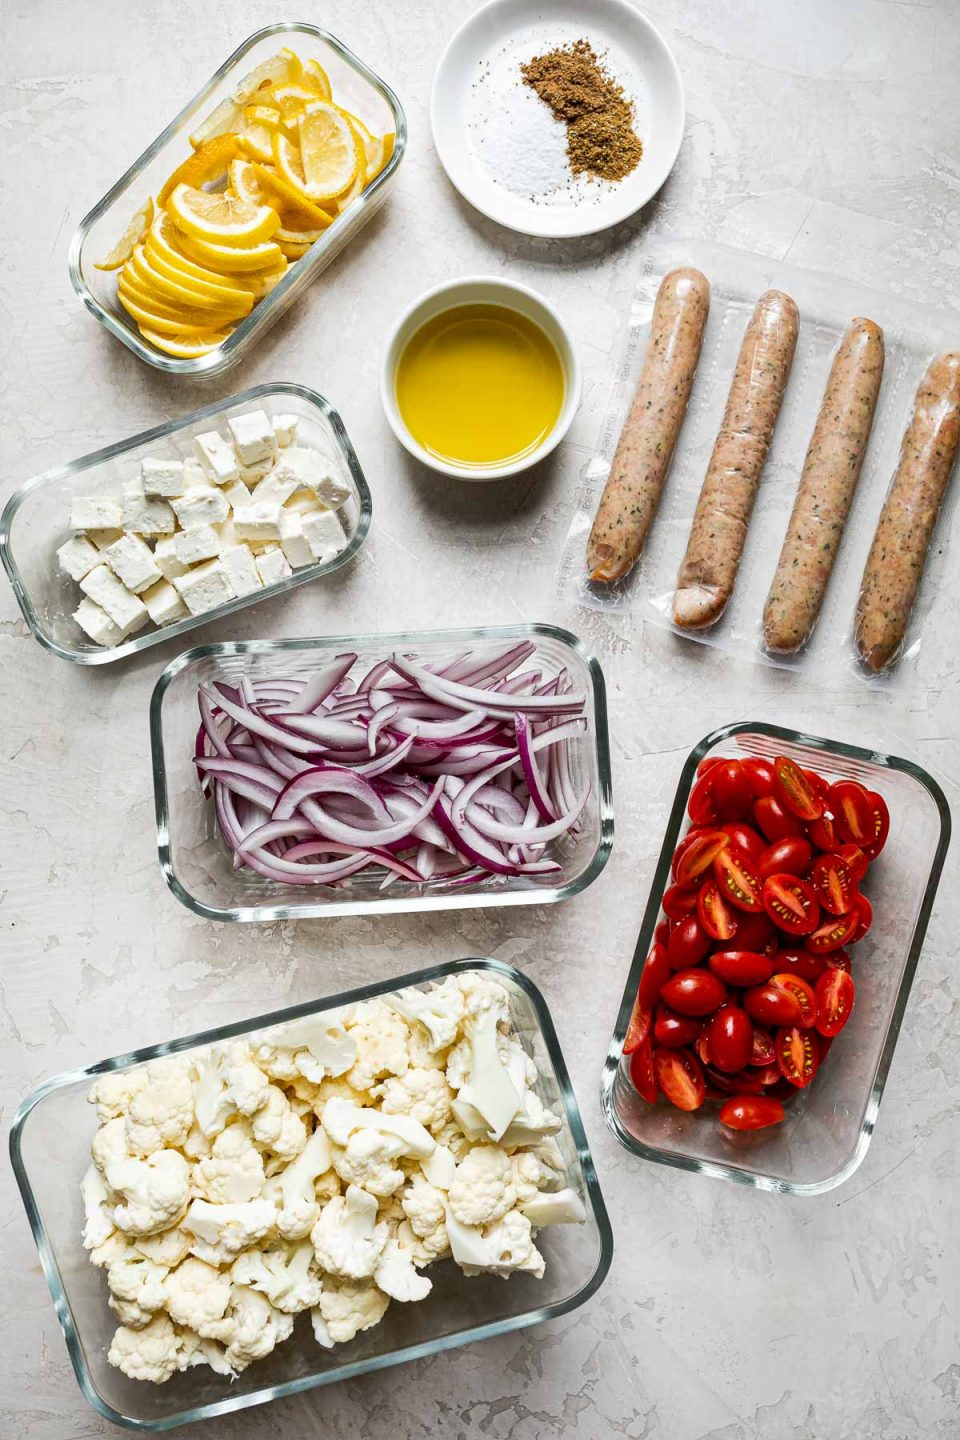 Sheet Pan Chicken Sausage and Veggies ingredients arranged on a creamy cement surface. The chicken sausage links are in their plastic wrapping. Cauliflower florets, tomatoes, sliced red onion, cubed feta, & sliced lemon are in glass Zwilling Fresh & Save storage containers. Olive oil is in a small bowl & spices are on a small white plate.